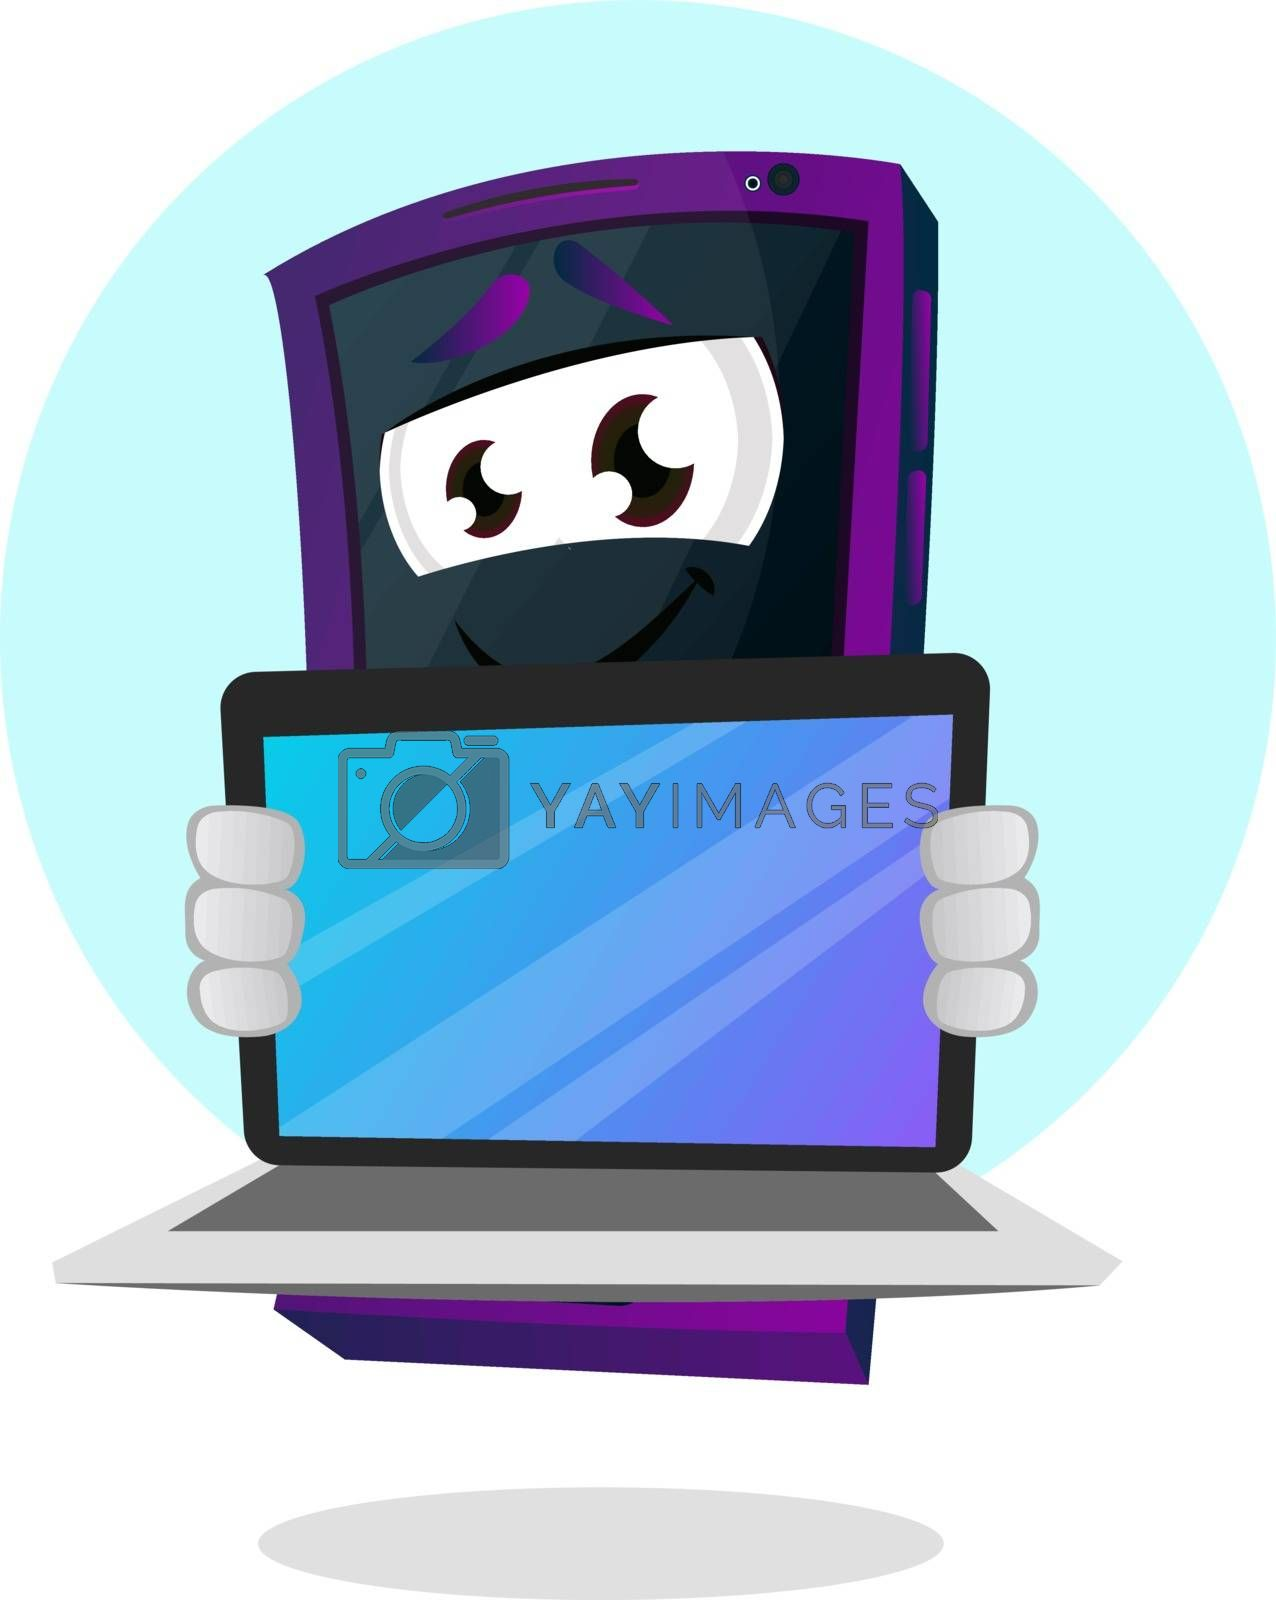 Royalty free image of Mobile emoji showing his laptop illustration vector on white bac by Morphart